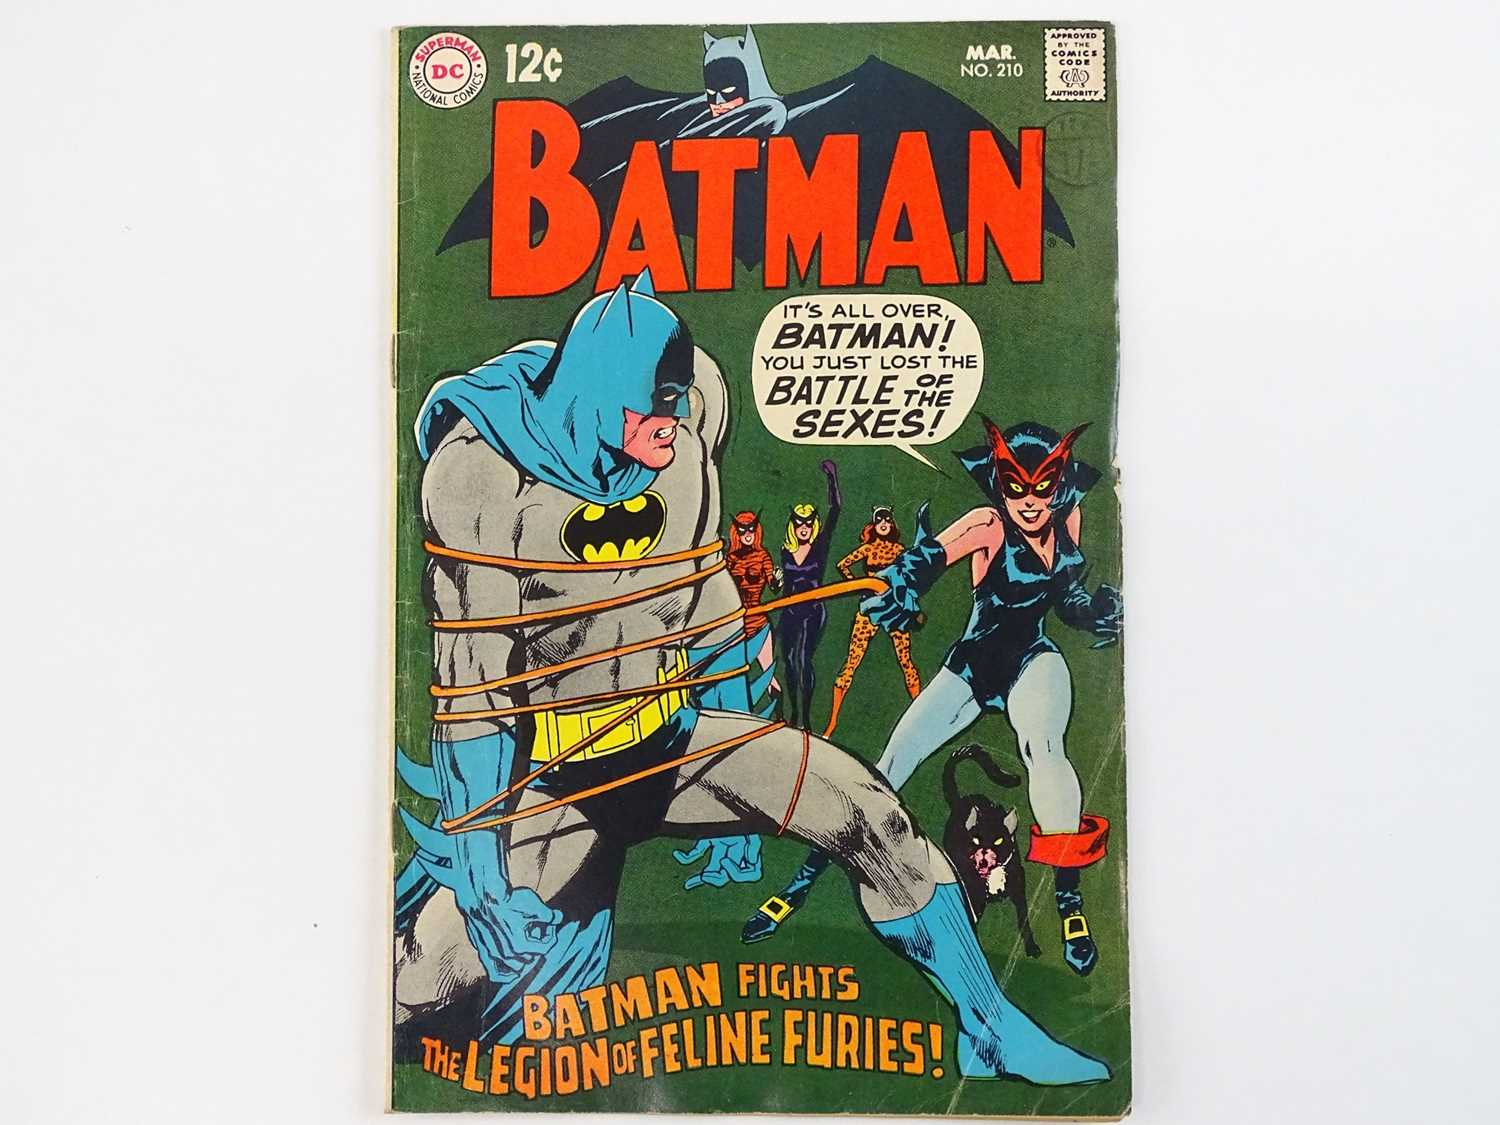 BATMAN #210 - (1969 - DC - UK Cover Price) - First appearance of the Feline Furies which includes